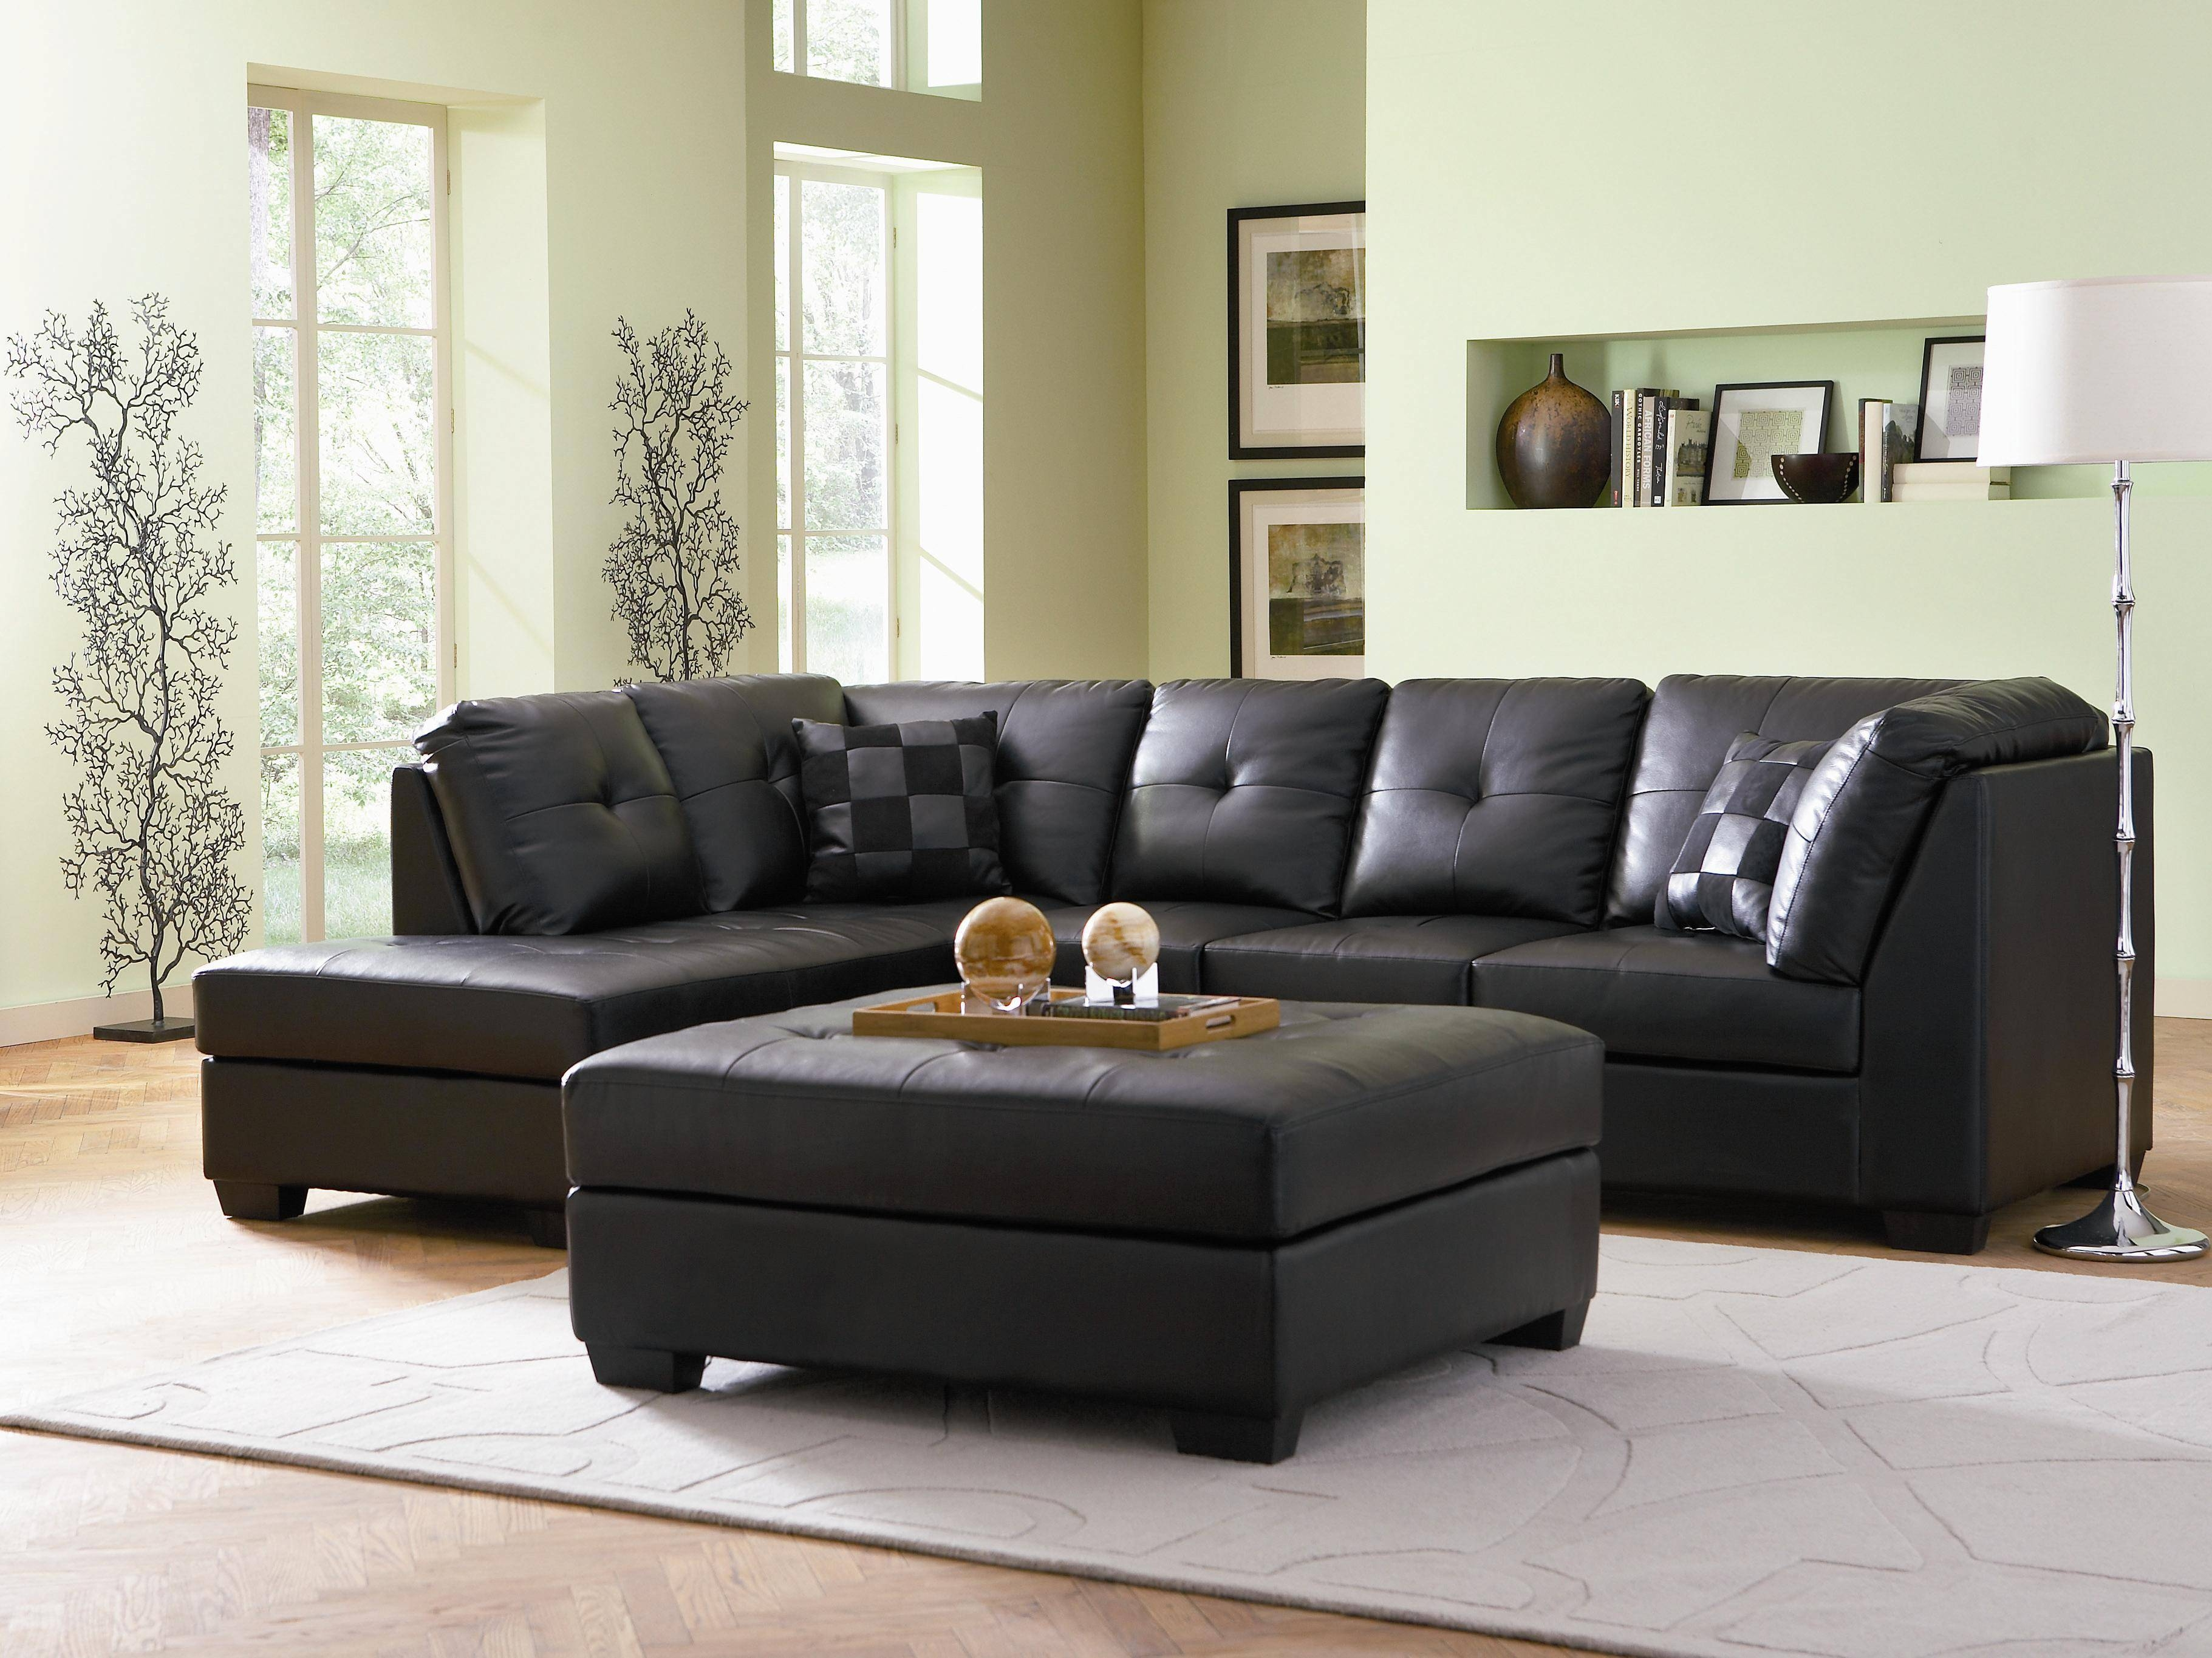 Furniture: Beautiful Sectional Sofas Cheap For Living Room pertaining to Cheap Black Sofas (Image 8 of 30)